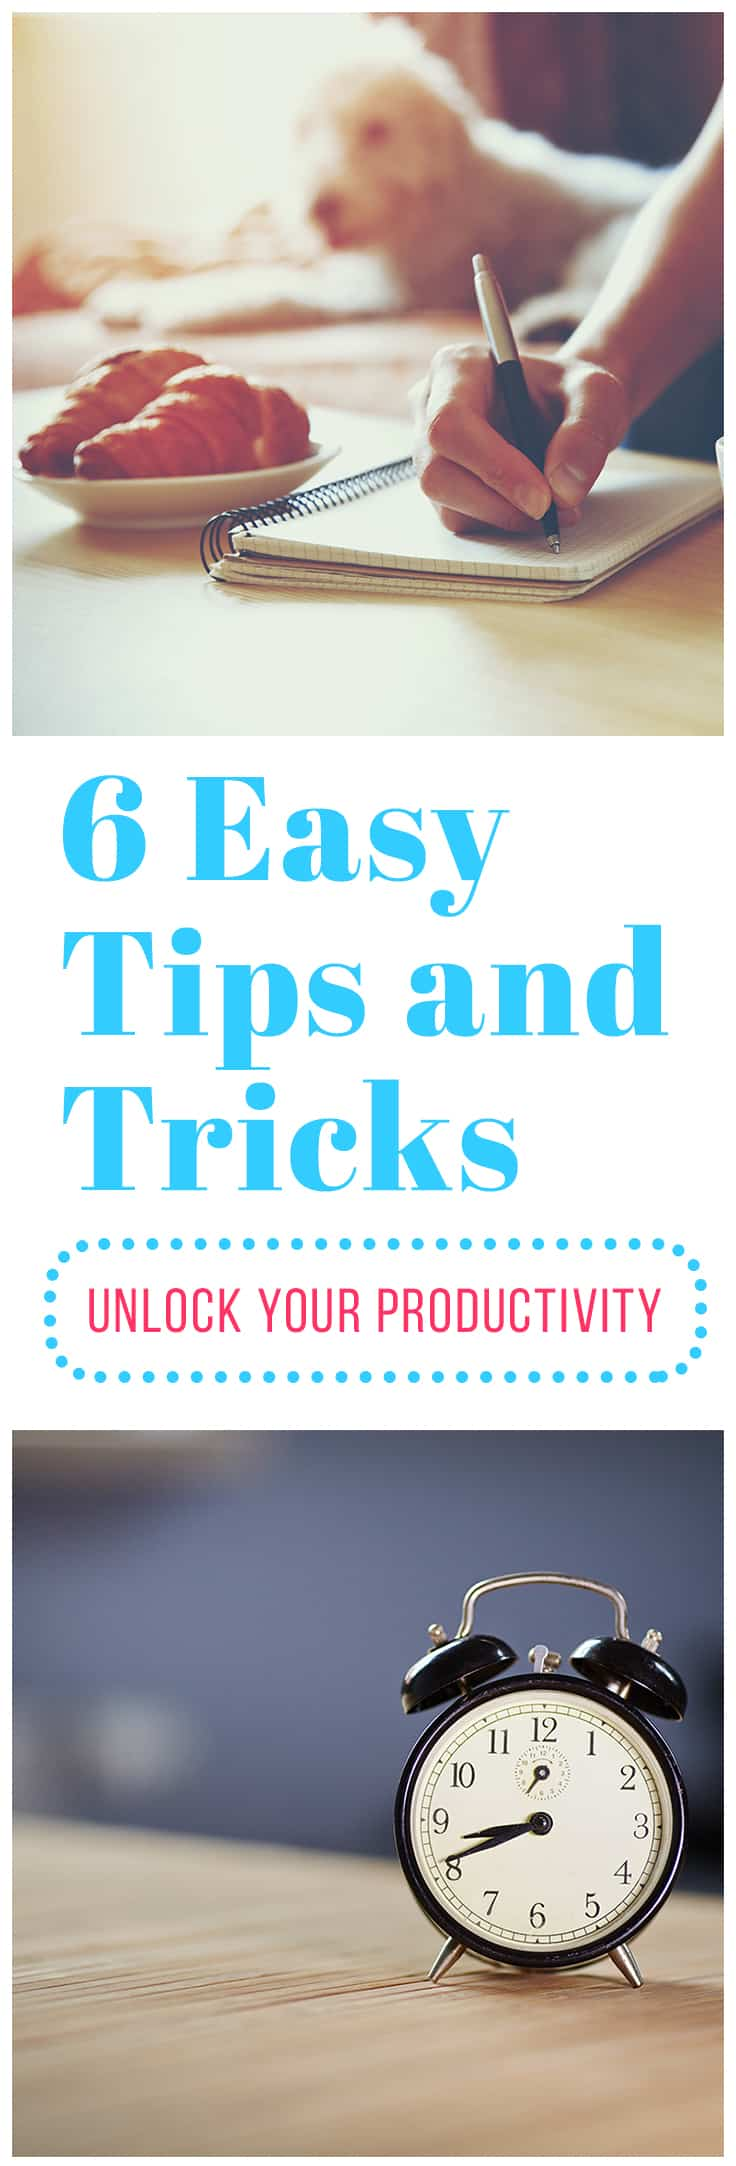 Stay on task and reach your goals with these 6 productivity tips. They are quick and easy to implement so you can start seeing results right away.